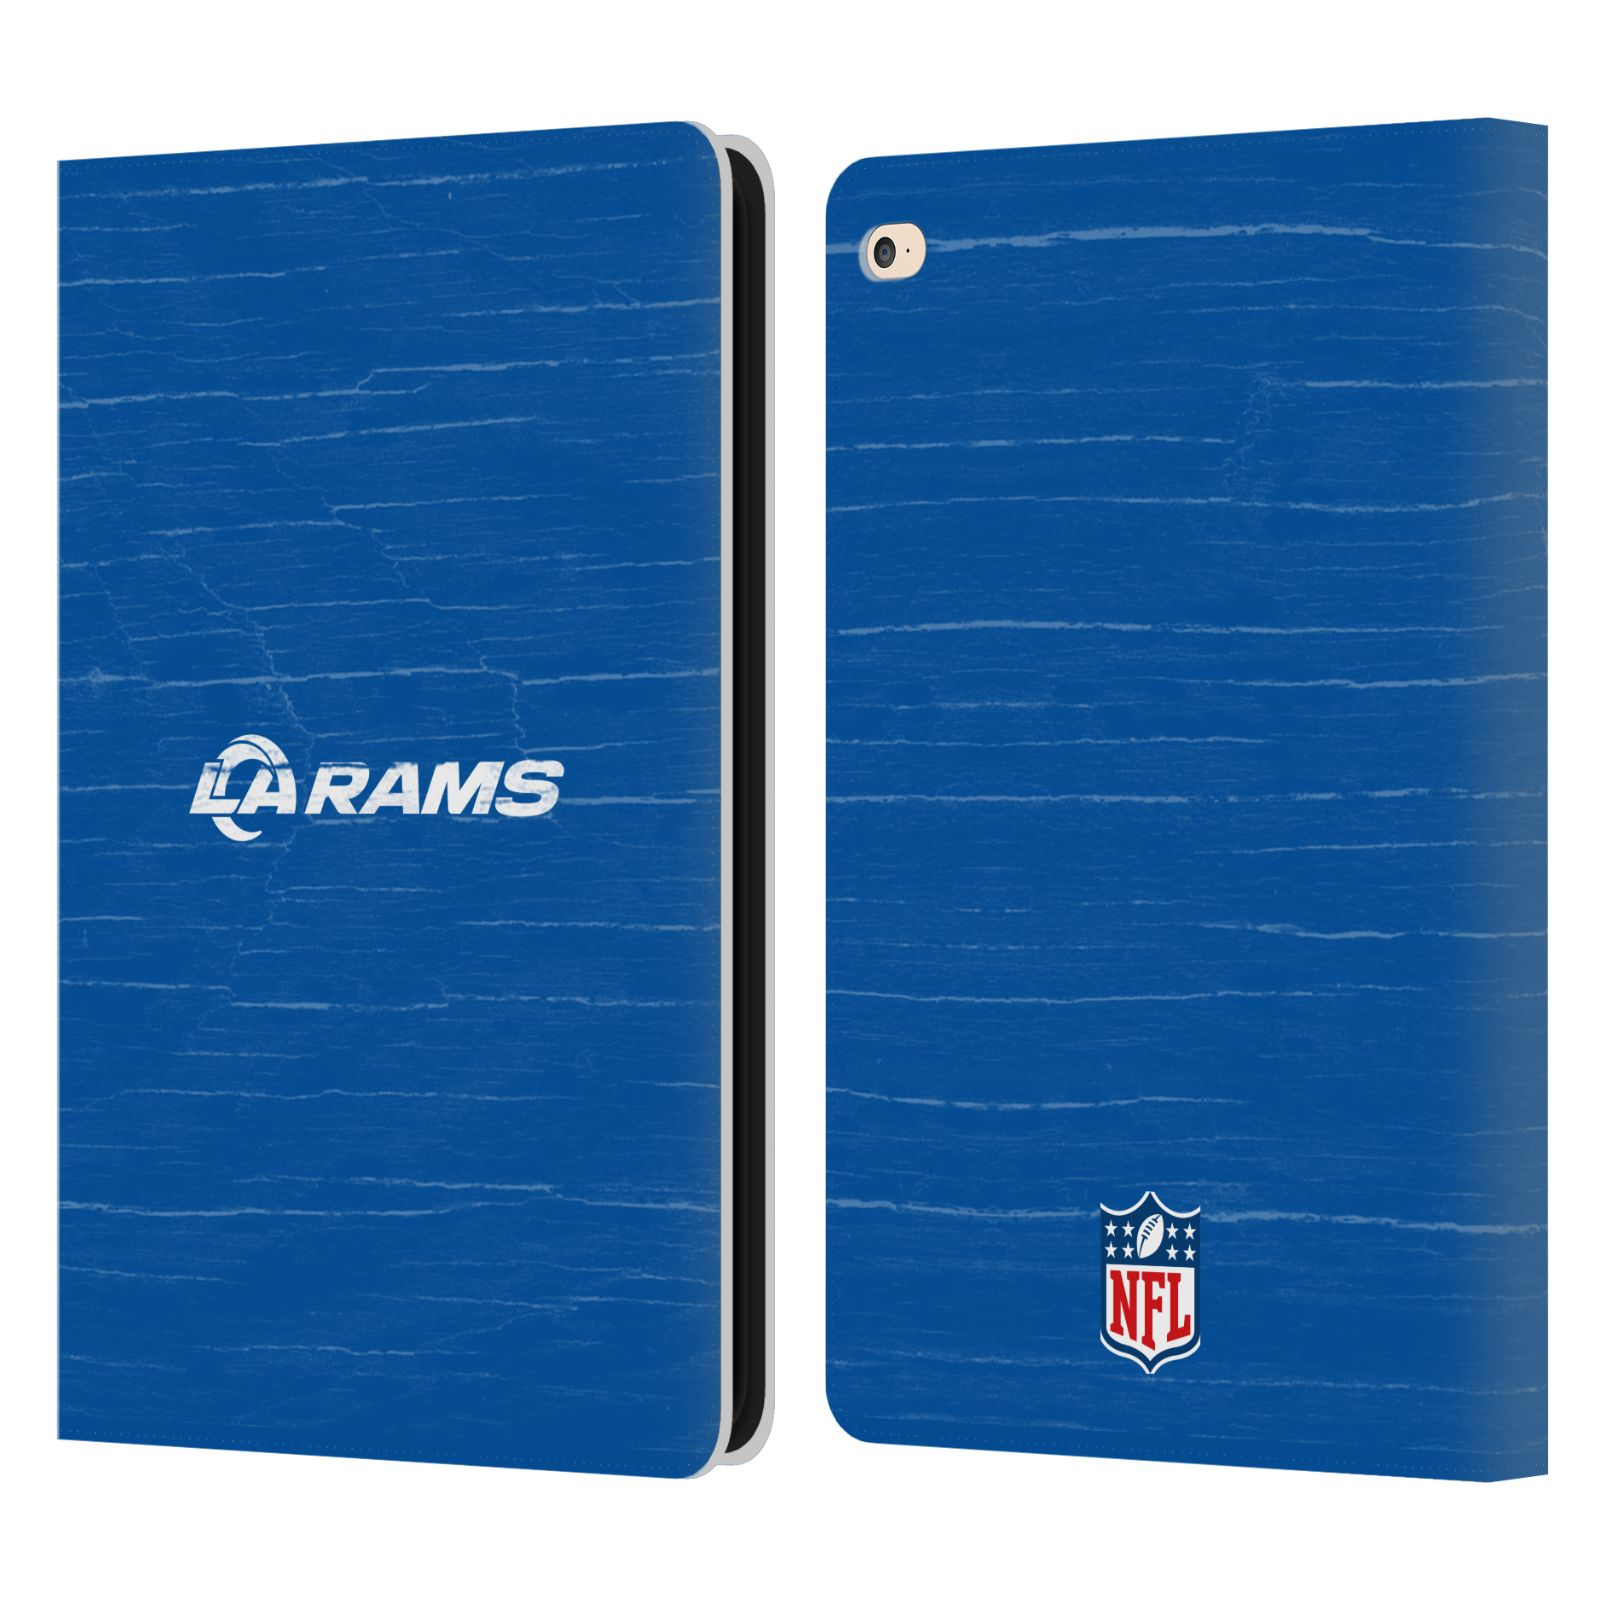 Watch Patriots Day Online Free Official Nfl Los Angeles Rams Logo Leather Book Wallet